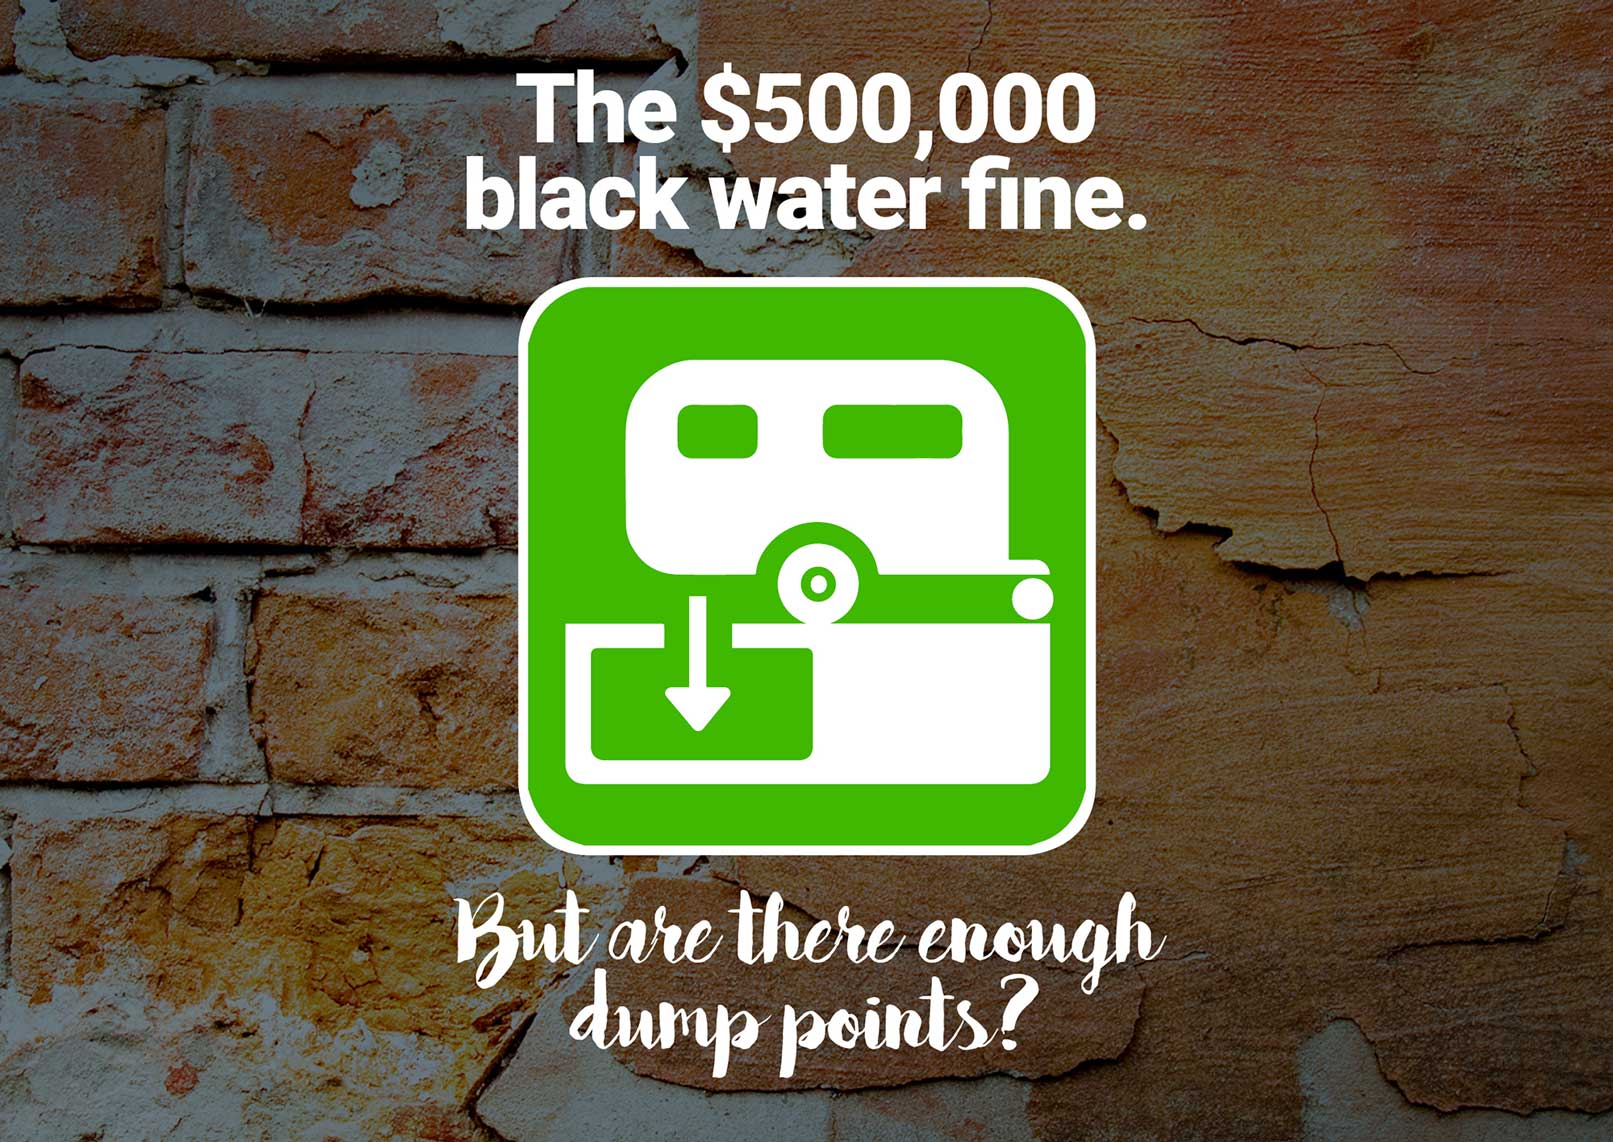 The $500,000 black water fine. But are there enough dump points?